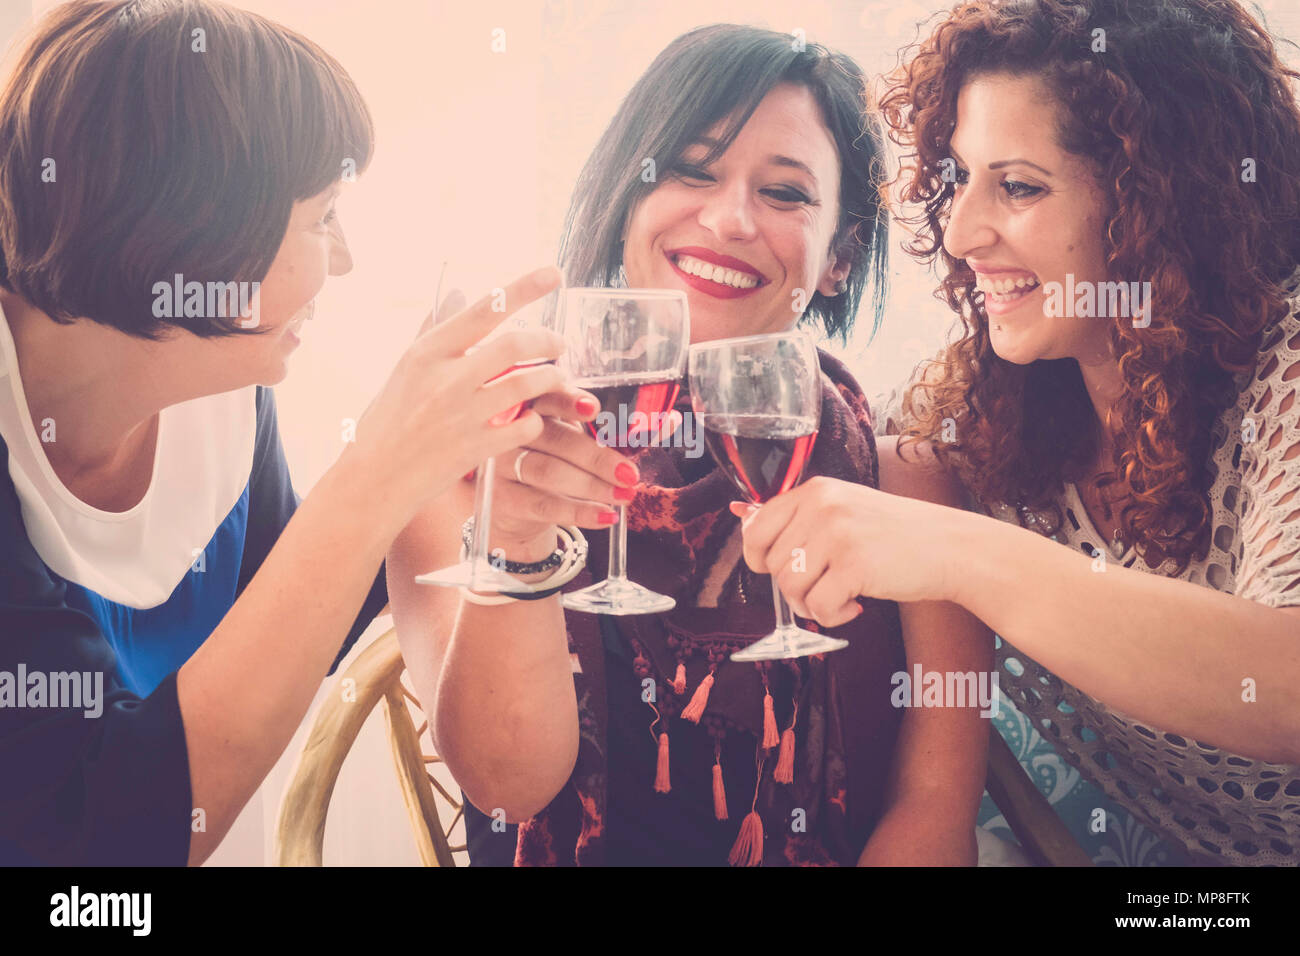 group of people three young women drink some red wine at home to celebrate their friendship. Lot of fun and smilies for a day of party - Stock Image